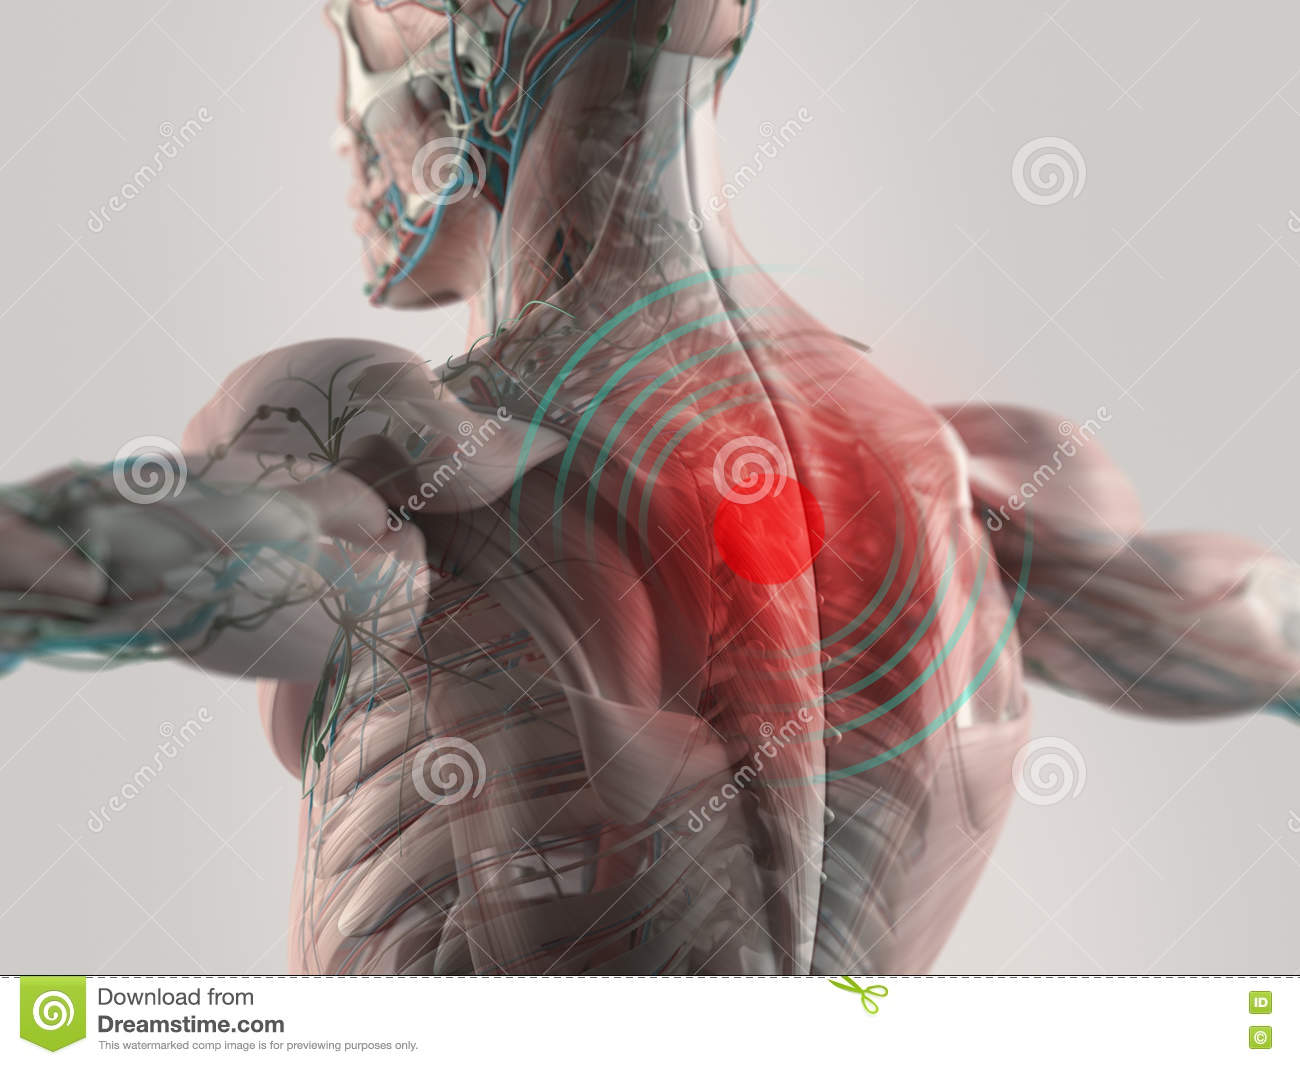 Spine muscle pain stock photo. Image of painful, tissue - 67627036